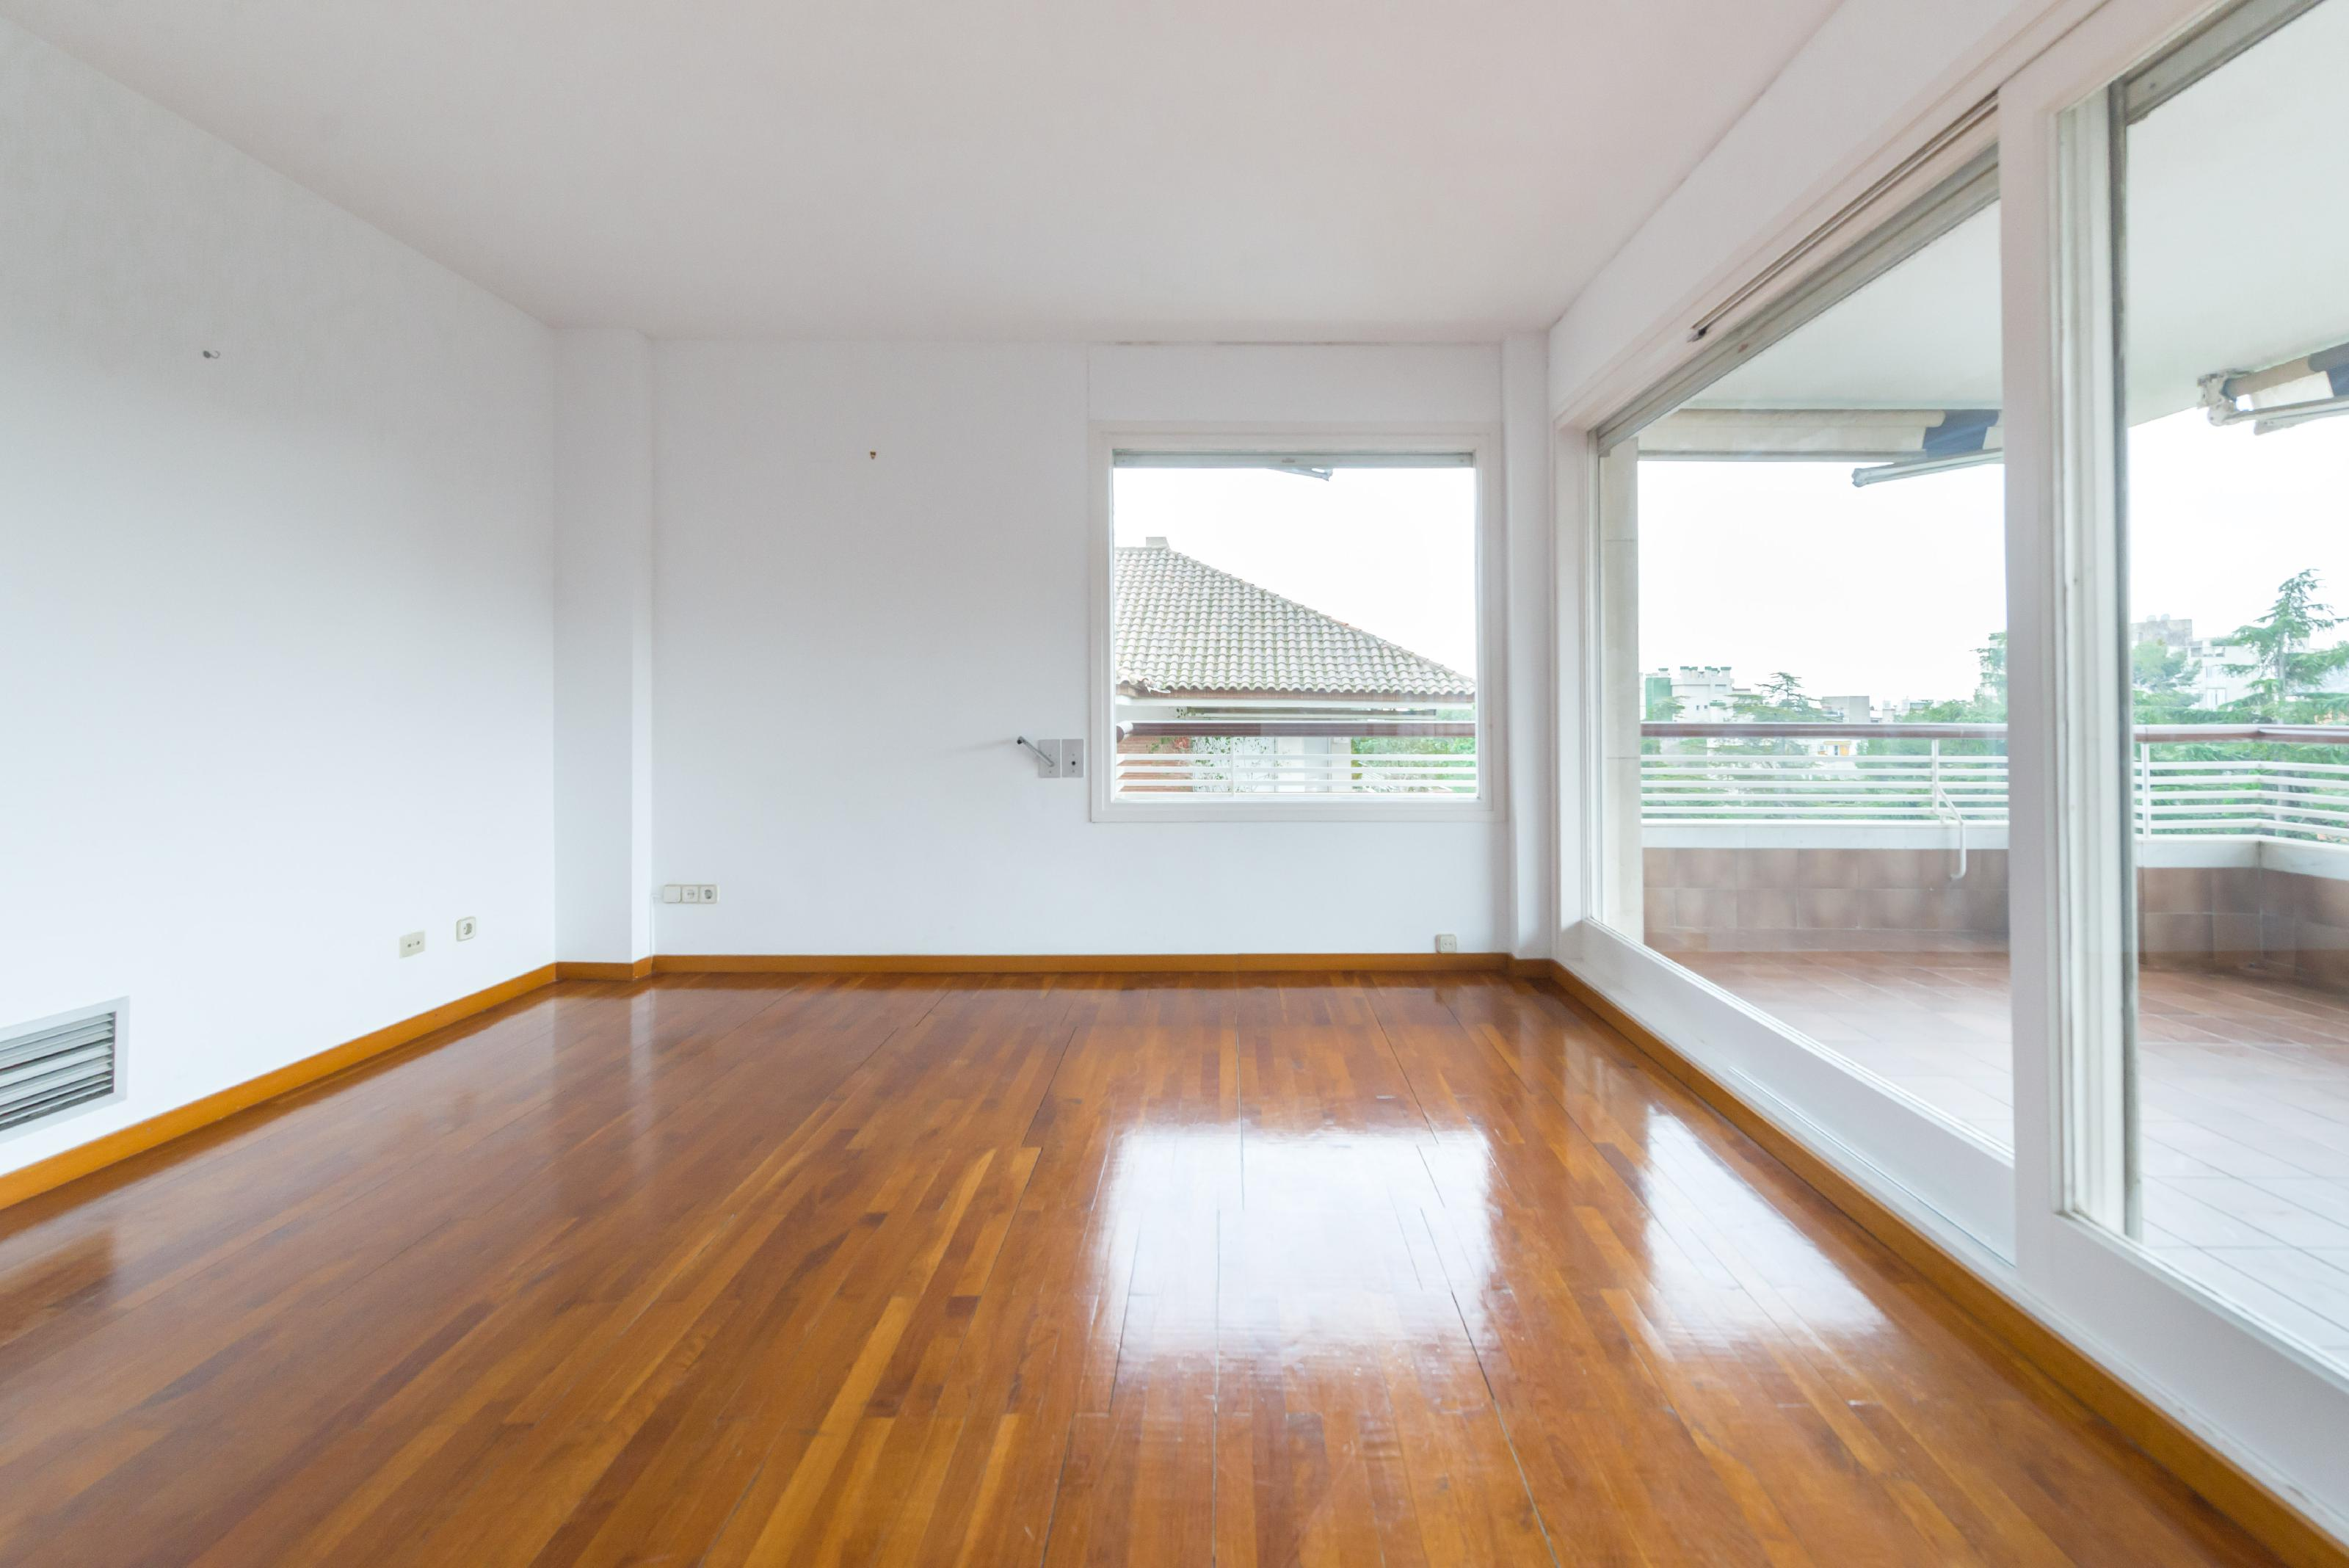 245495 Penthouse for sale in Les Corts, Pedralbes 2